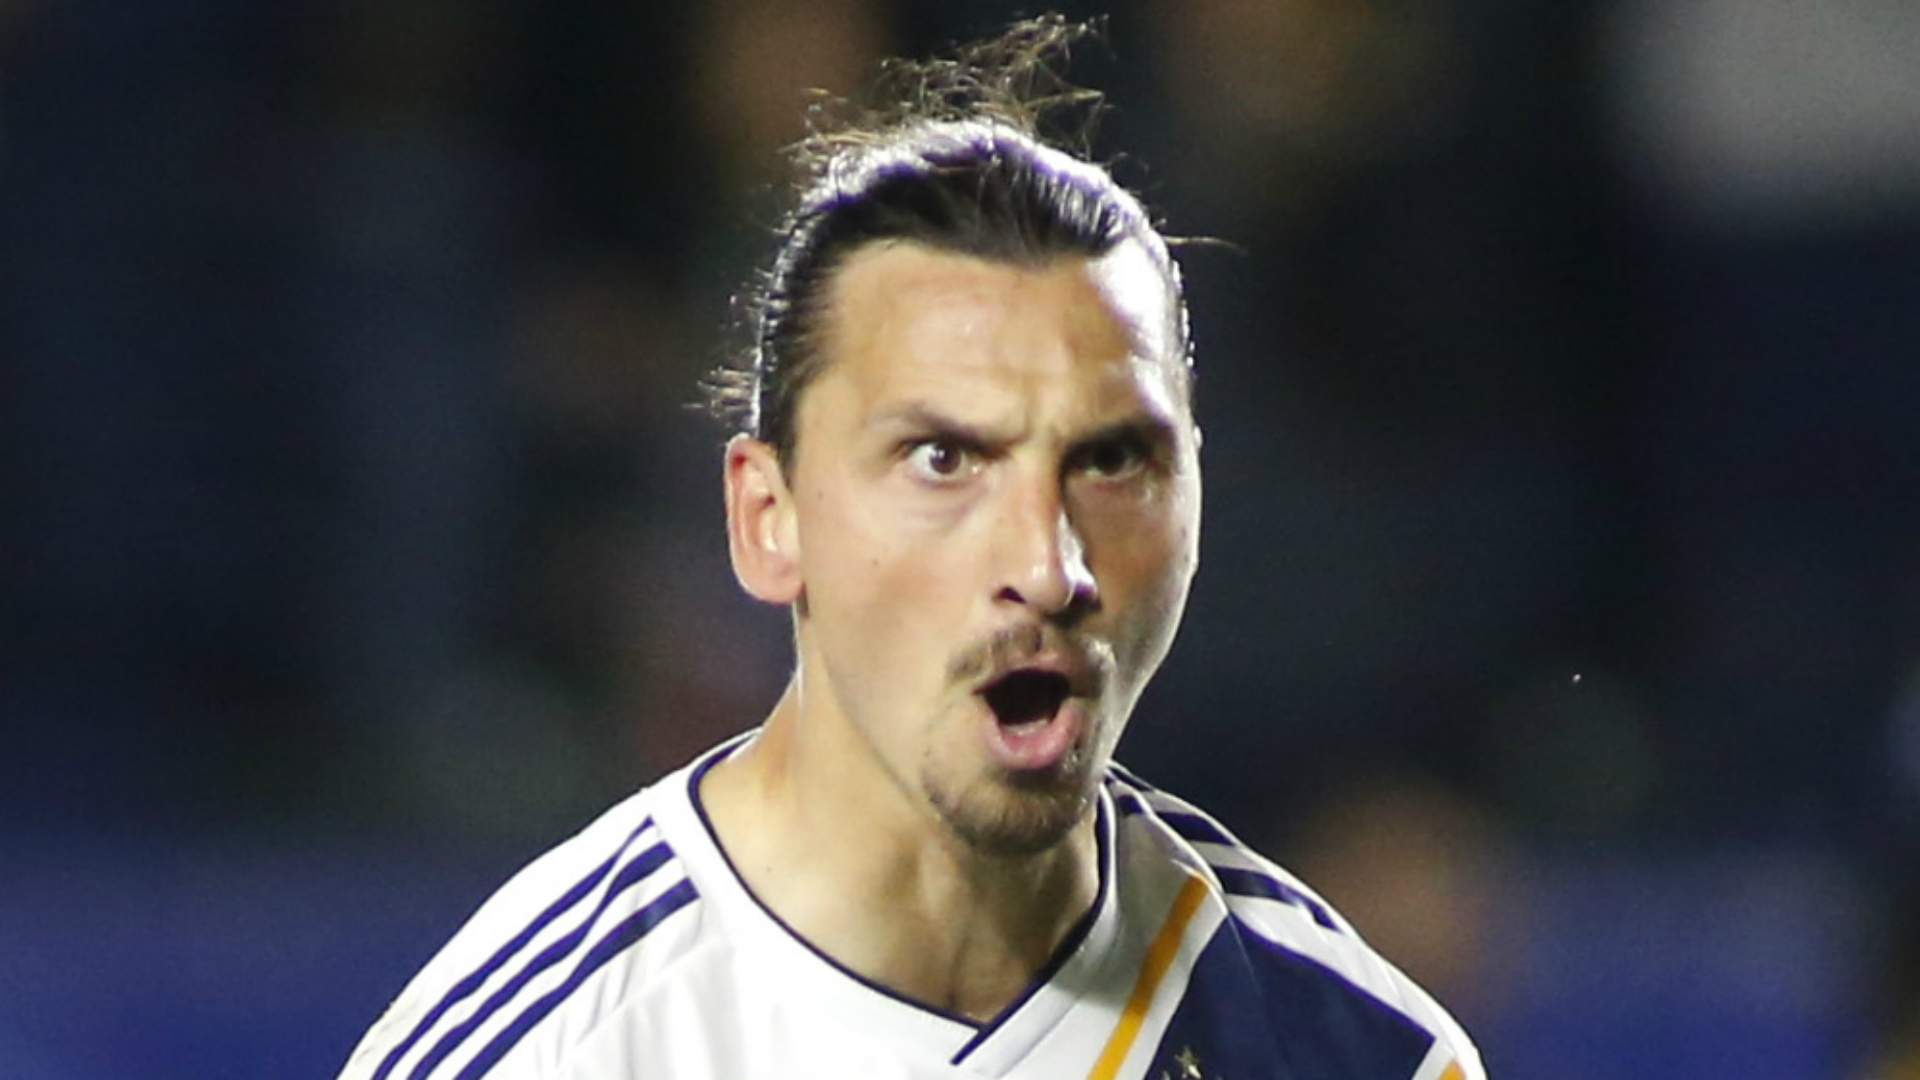 MLS Review: Ibrahimovic helps Galaxy clinch play-off spot, Mitrita inspires New York City